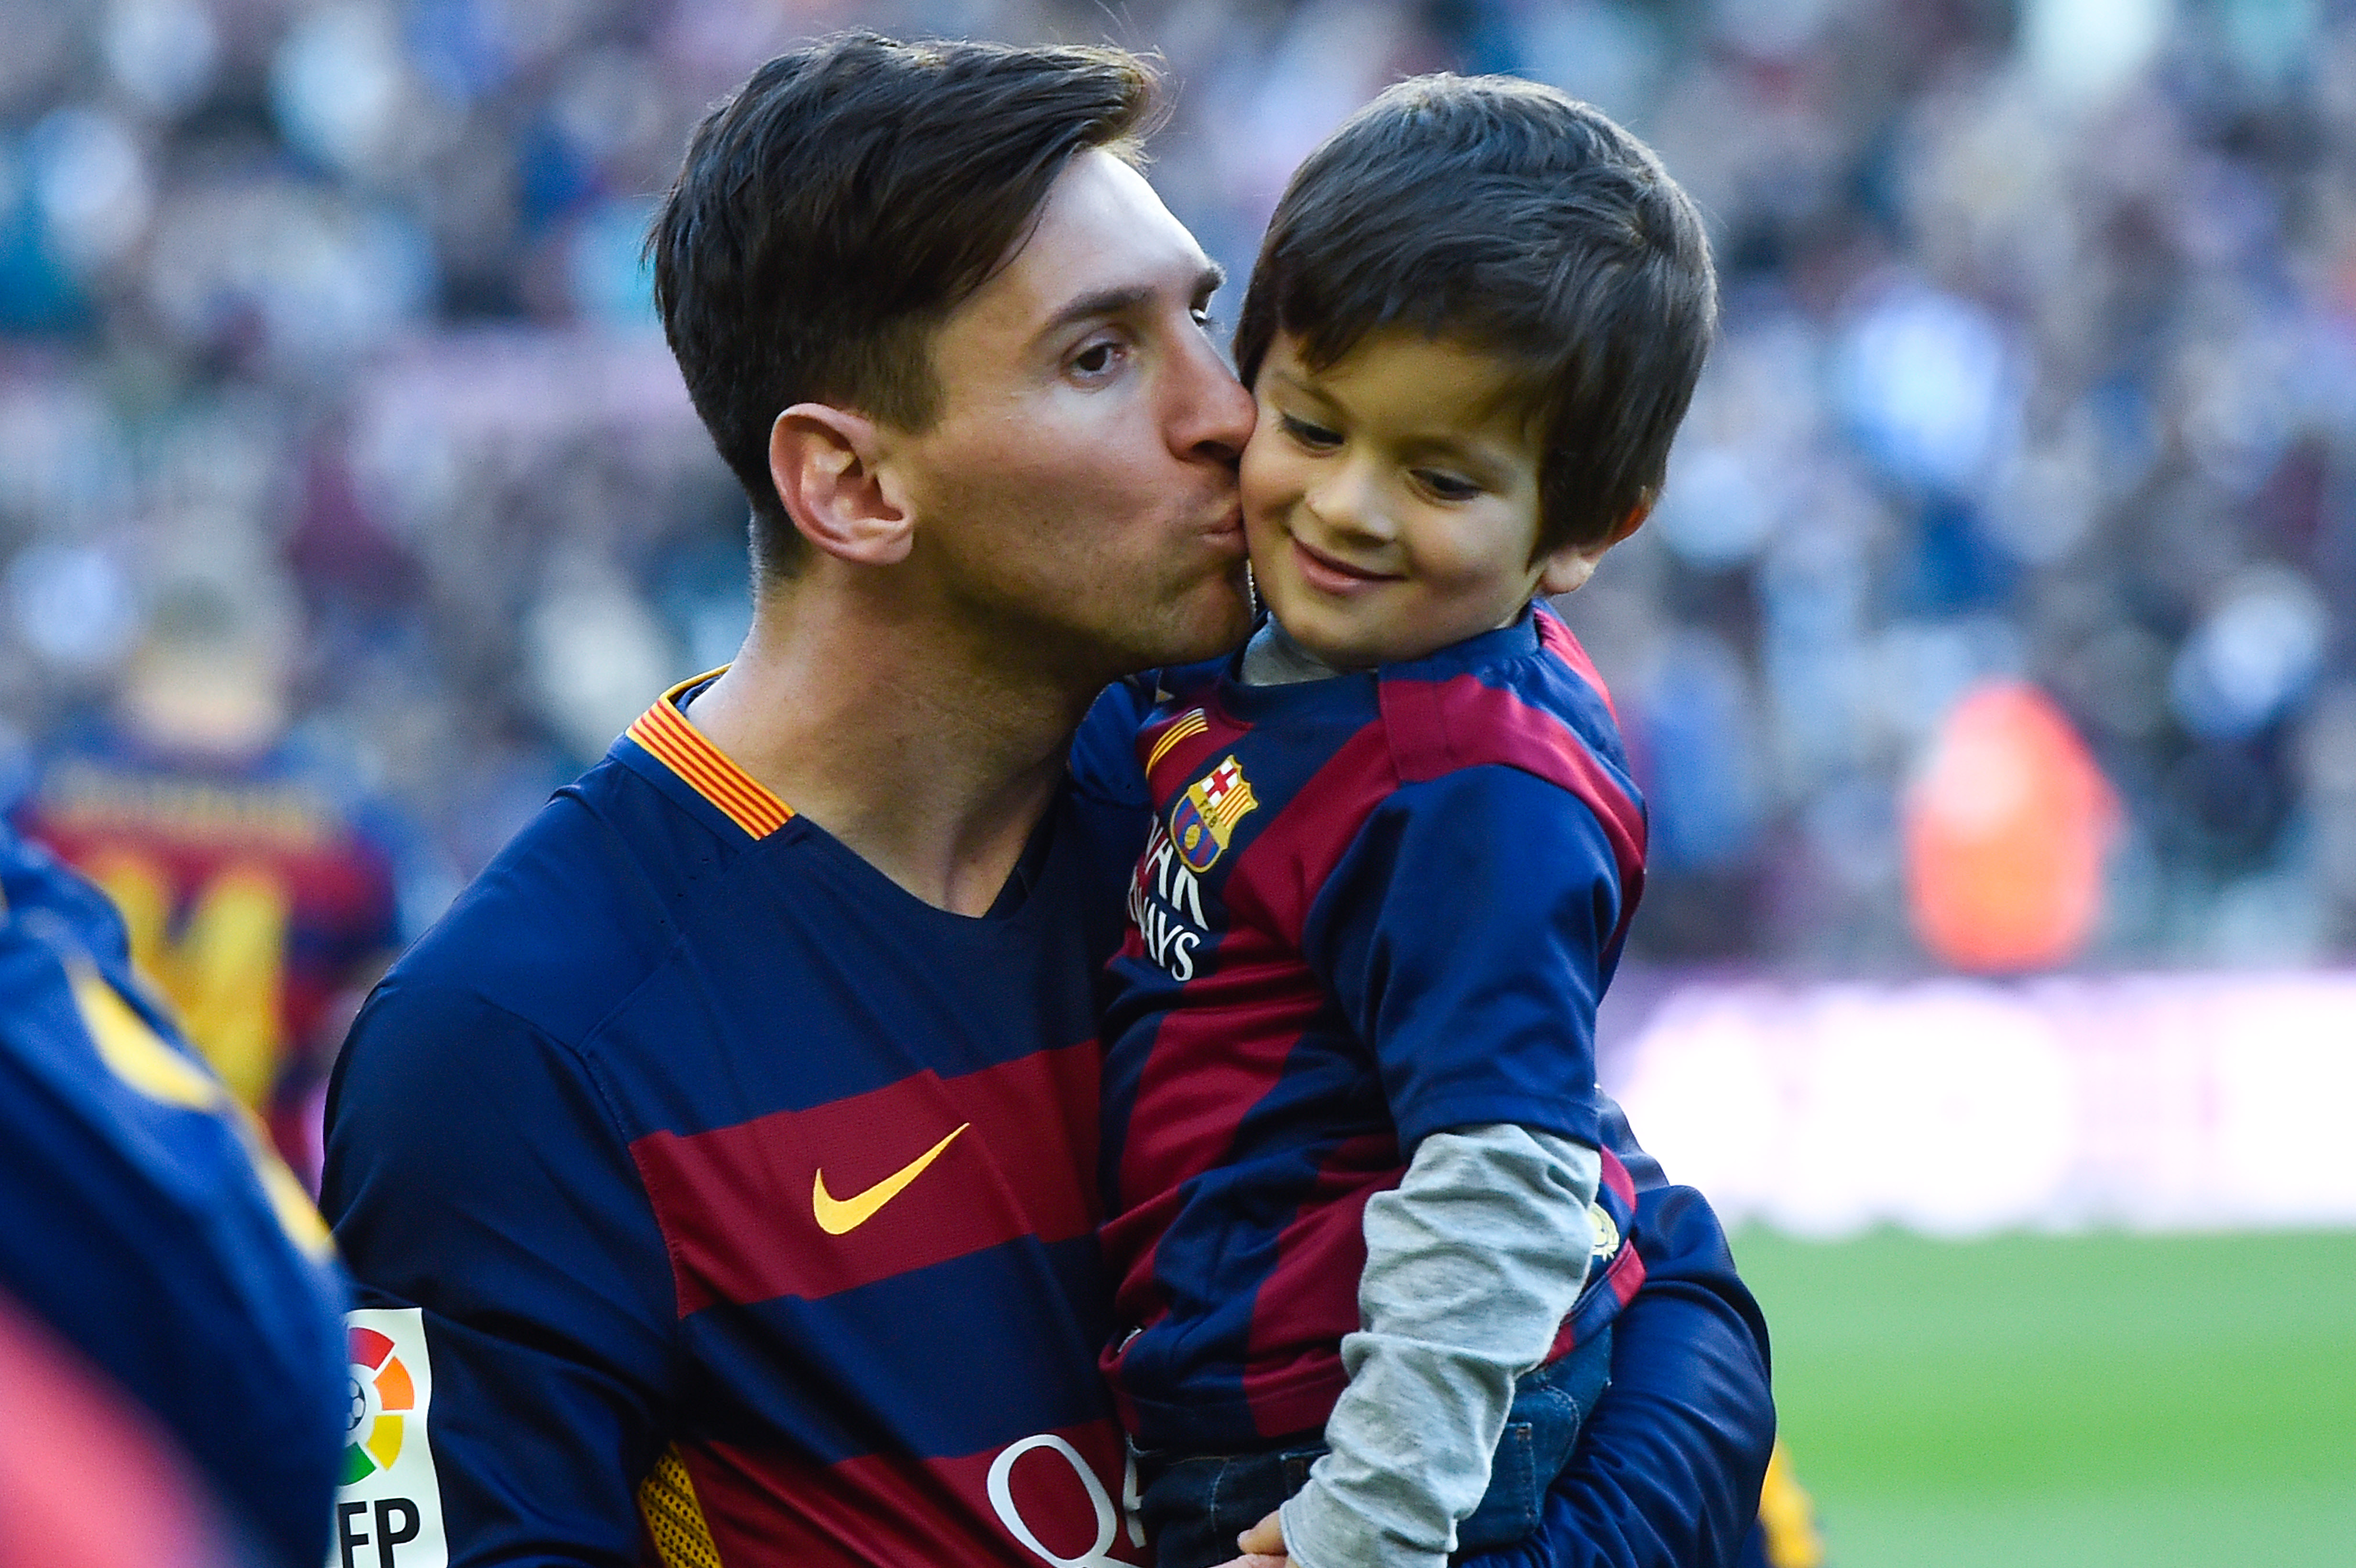 timeless design b8a27 680fd Lionel Messi's 4-year-old son set to join Barcelona school ...